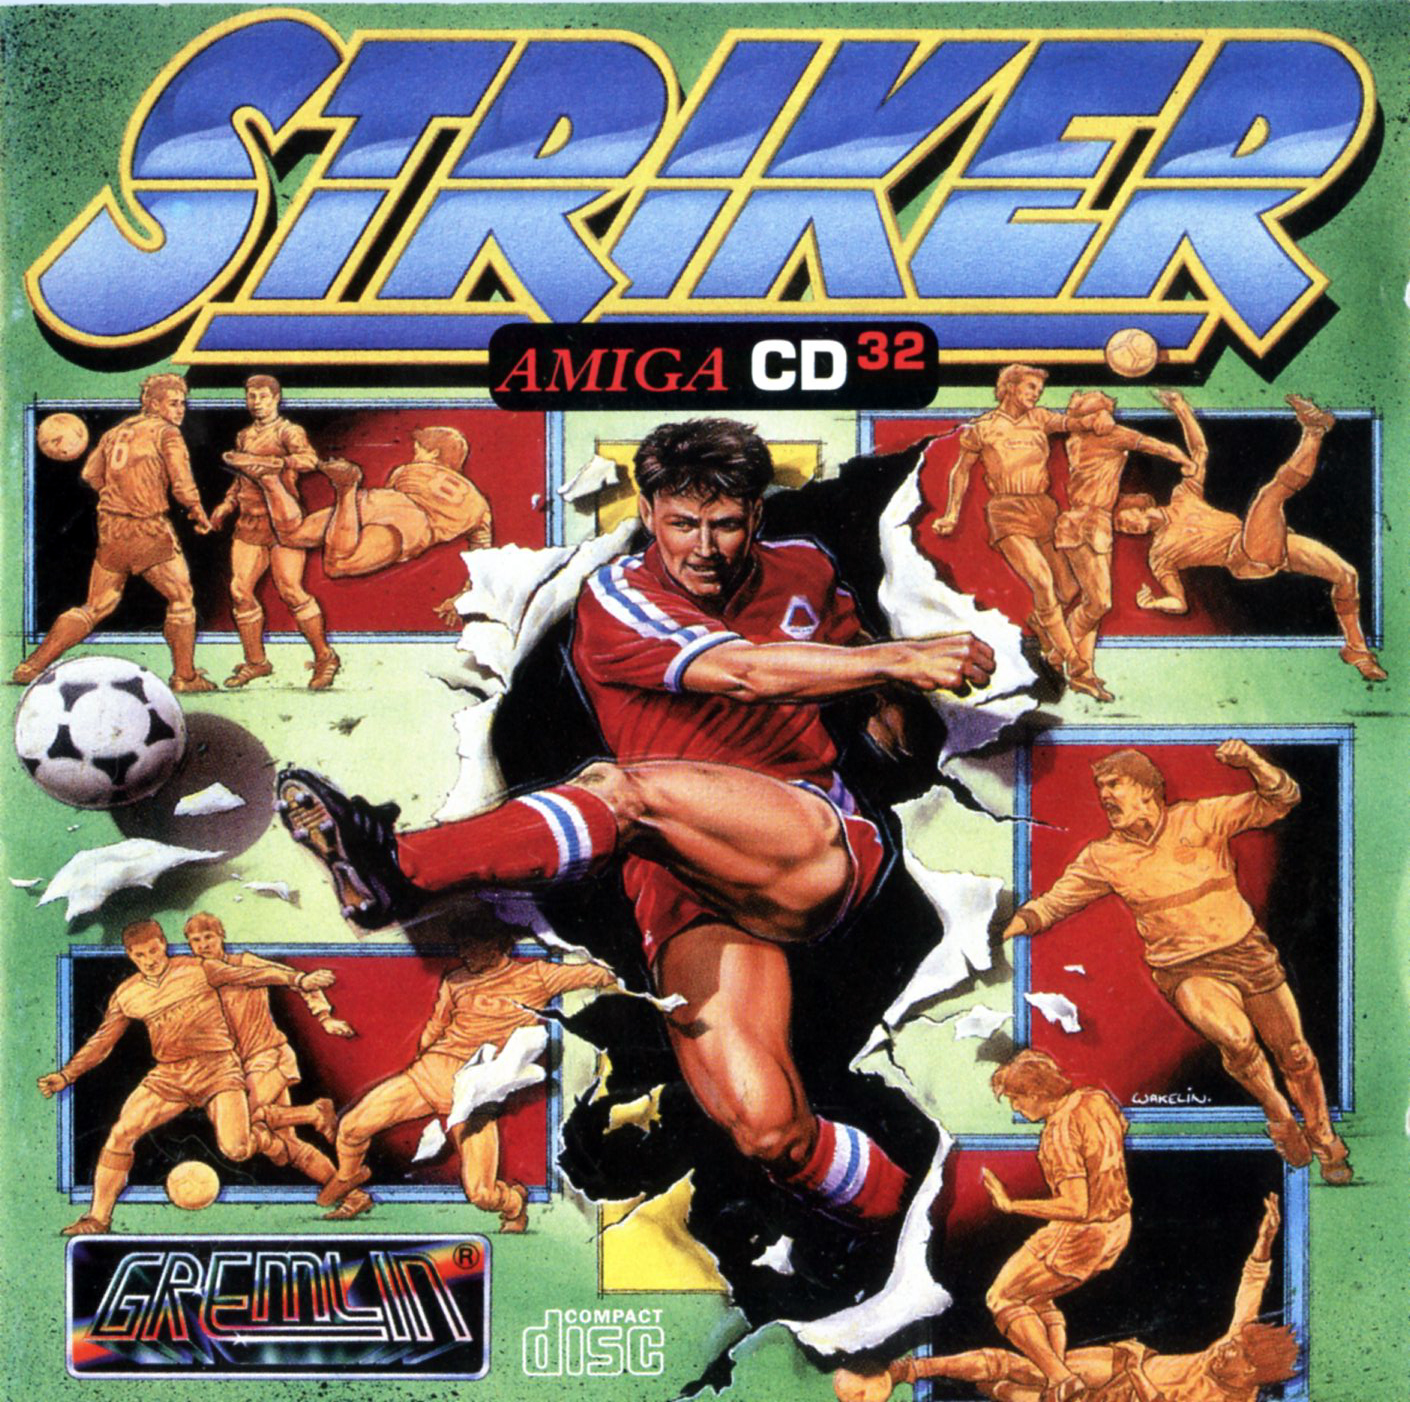 Striker (Amiga CD32)